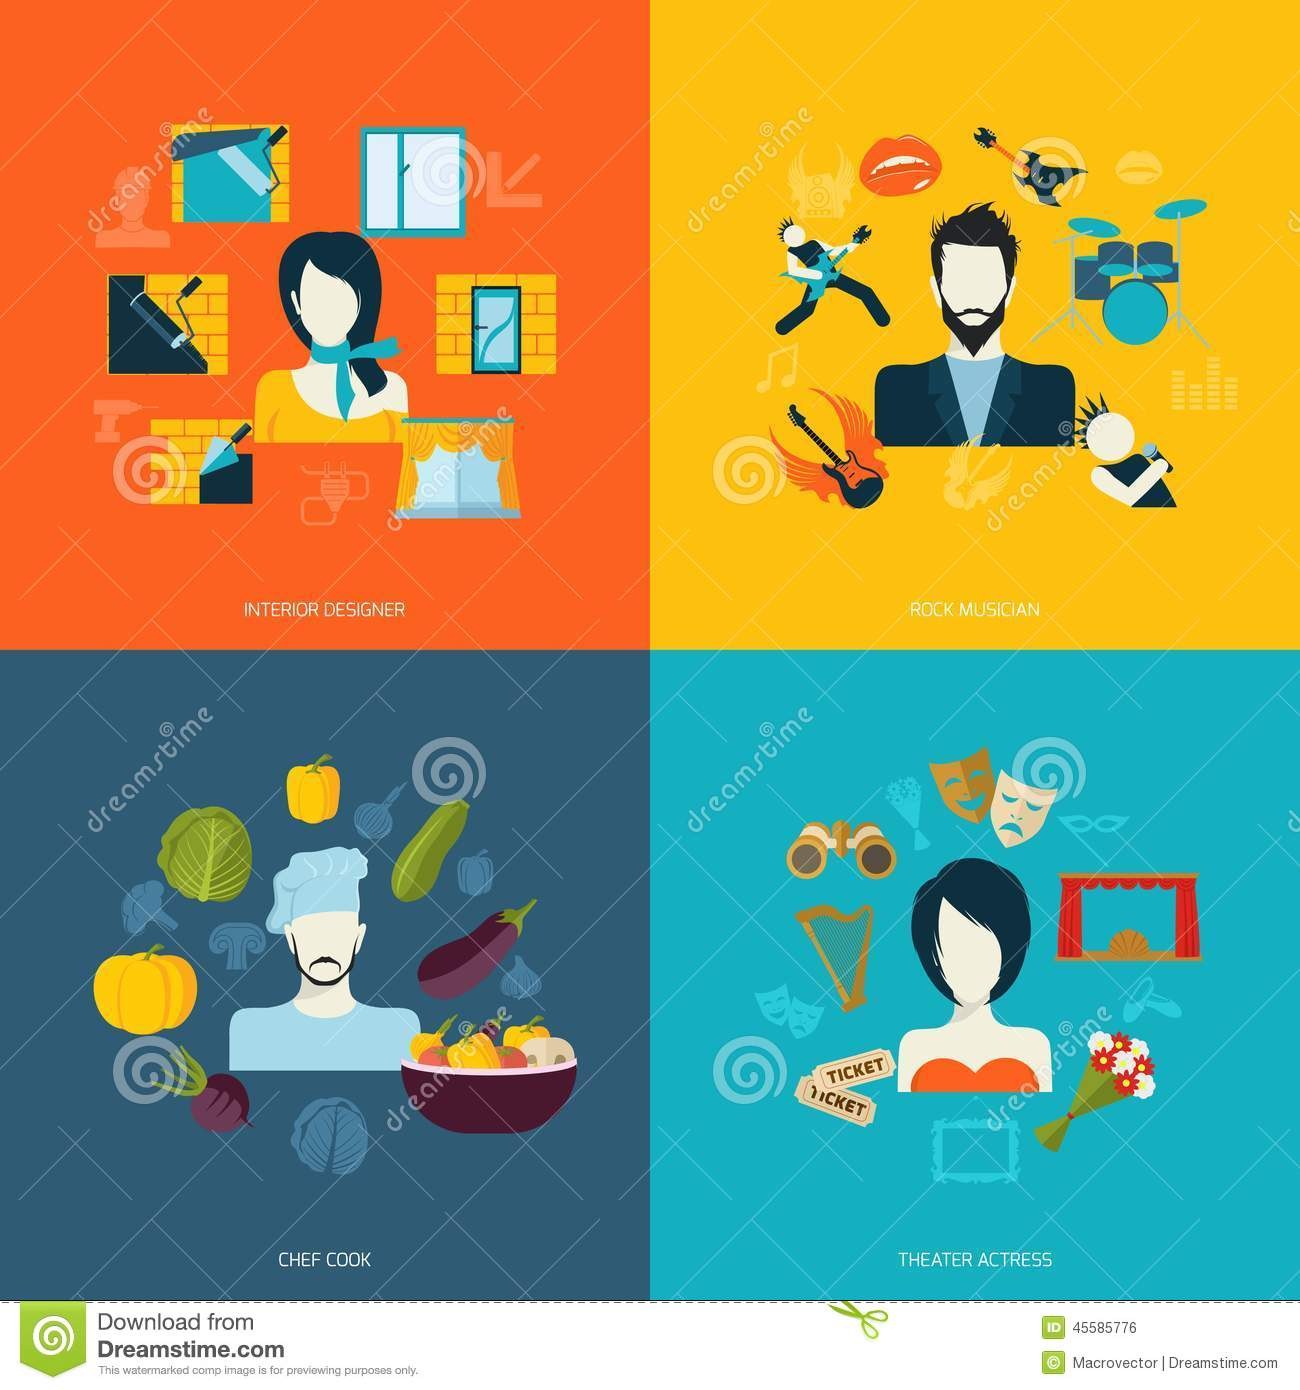 Actress Chef Cook Designer Flat Icons Illustration Interior